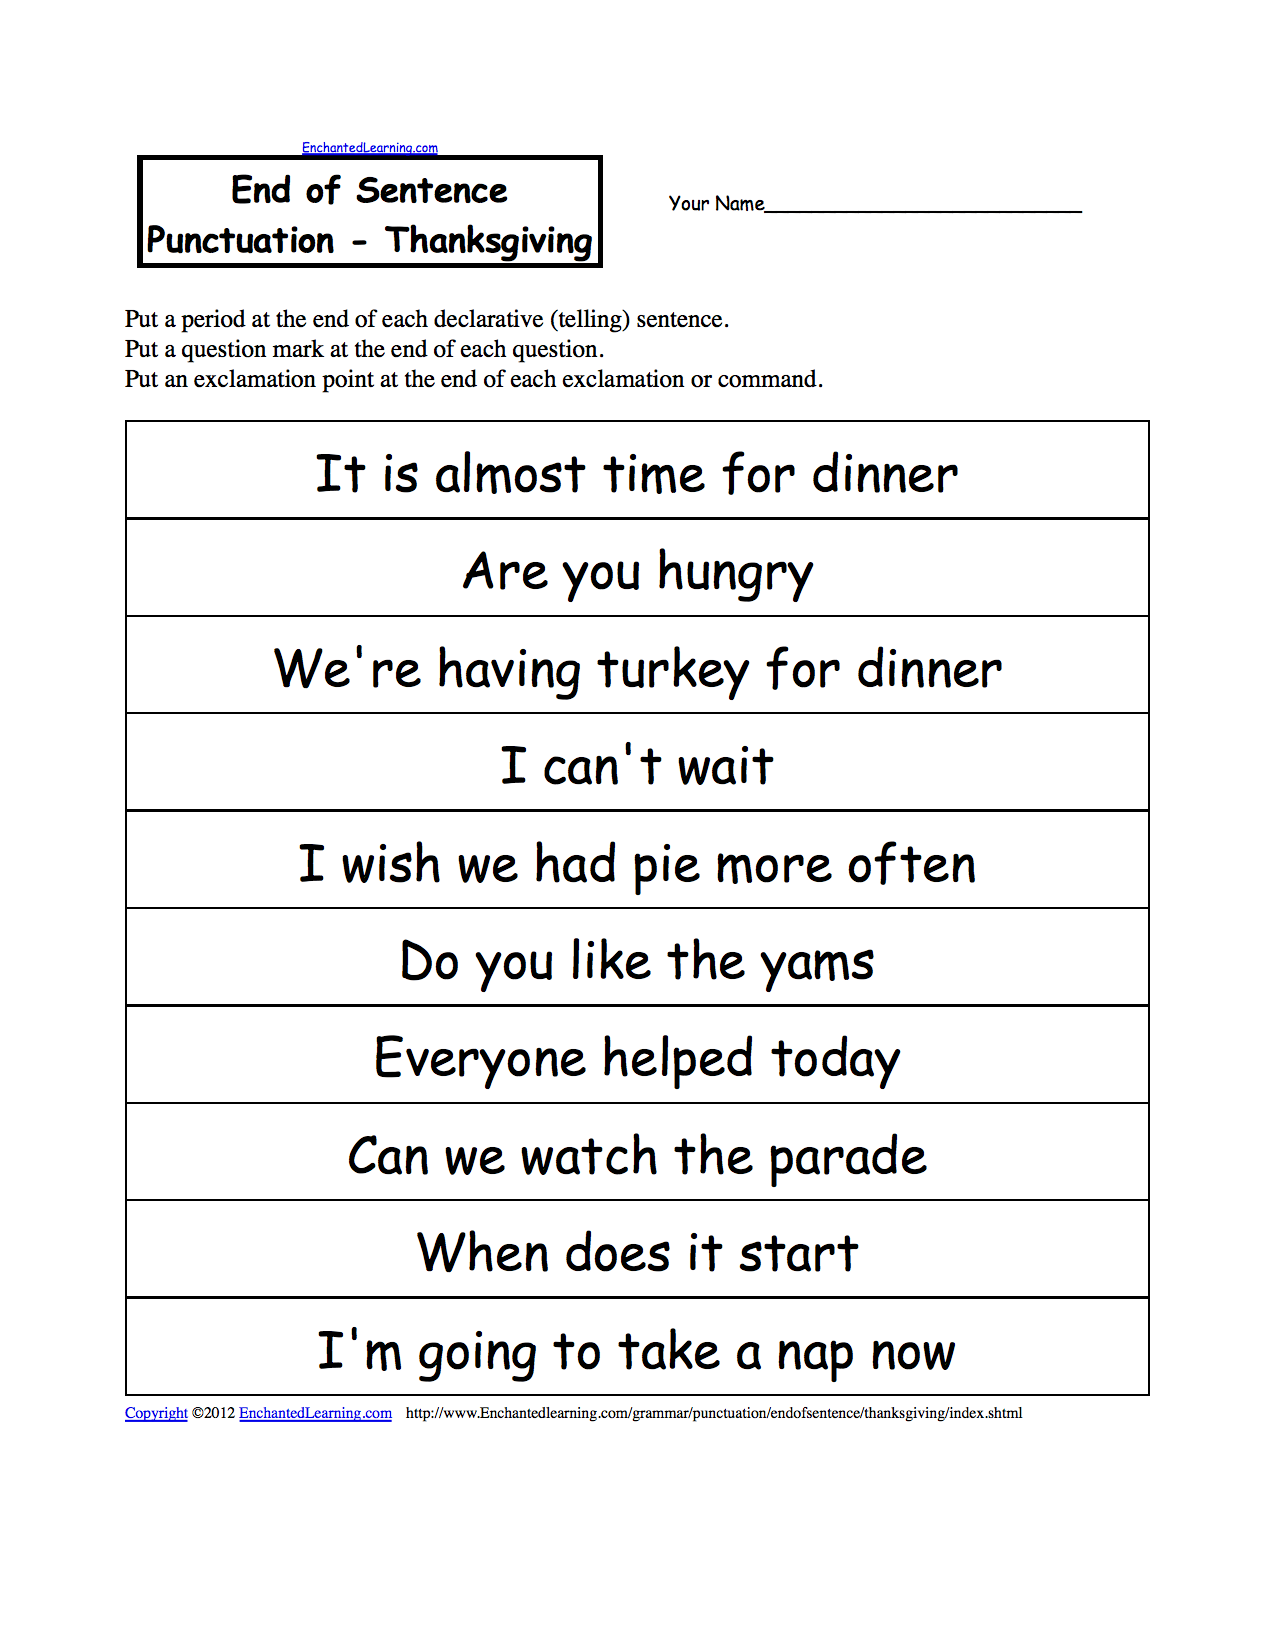 End of Sentence Punctuation Thanksgiving   Punctuation worksheets [ 1649 x 1275 Pixel ]